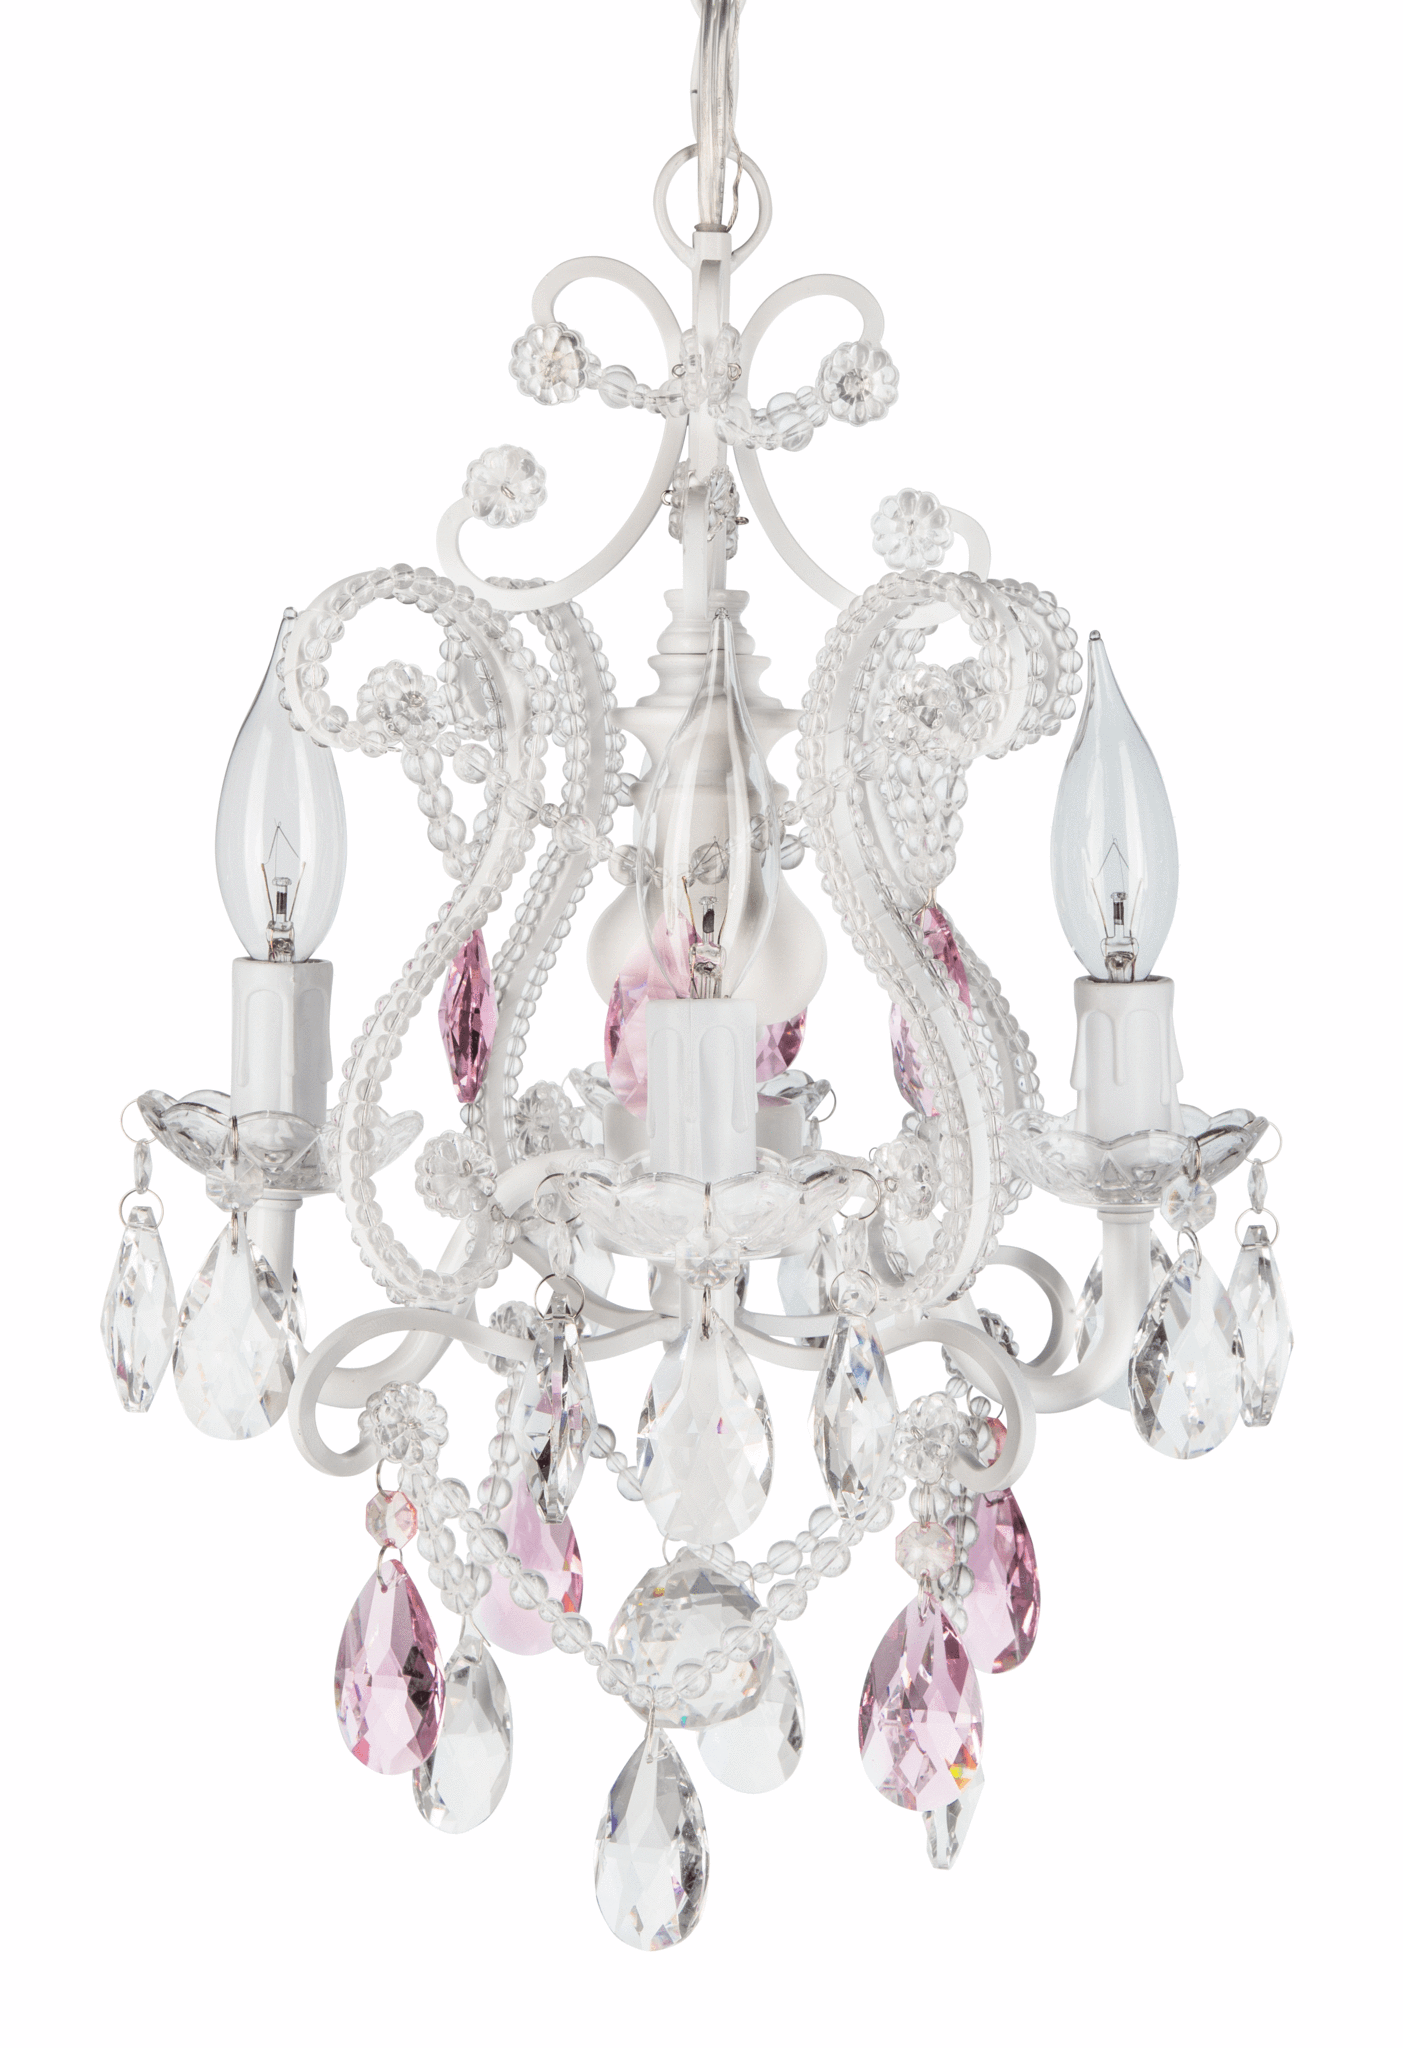 4 light mini crystal beaded plug in chandelier white w pink 4 light mini crystal beaded plug in chandelier white w pink crystals arubaitofo Gallery